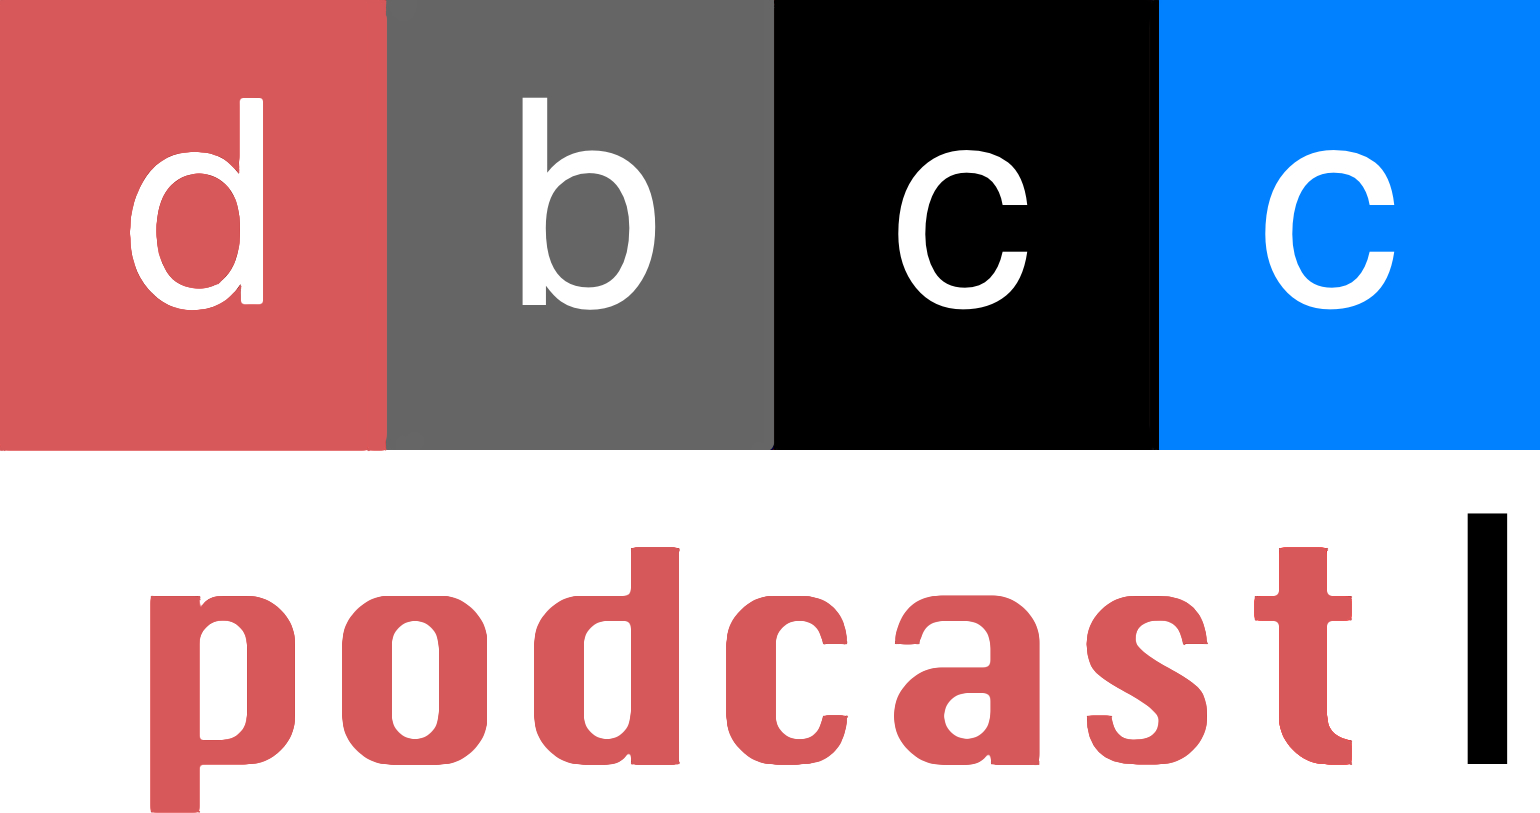 dbcc podcast pink.png